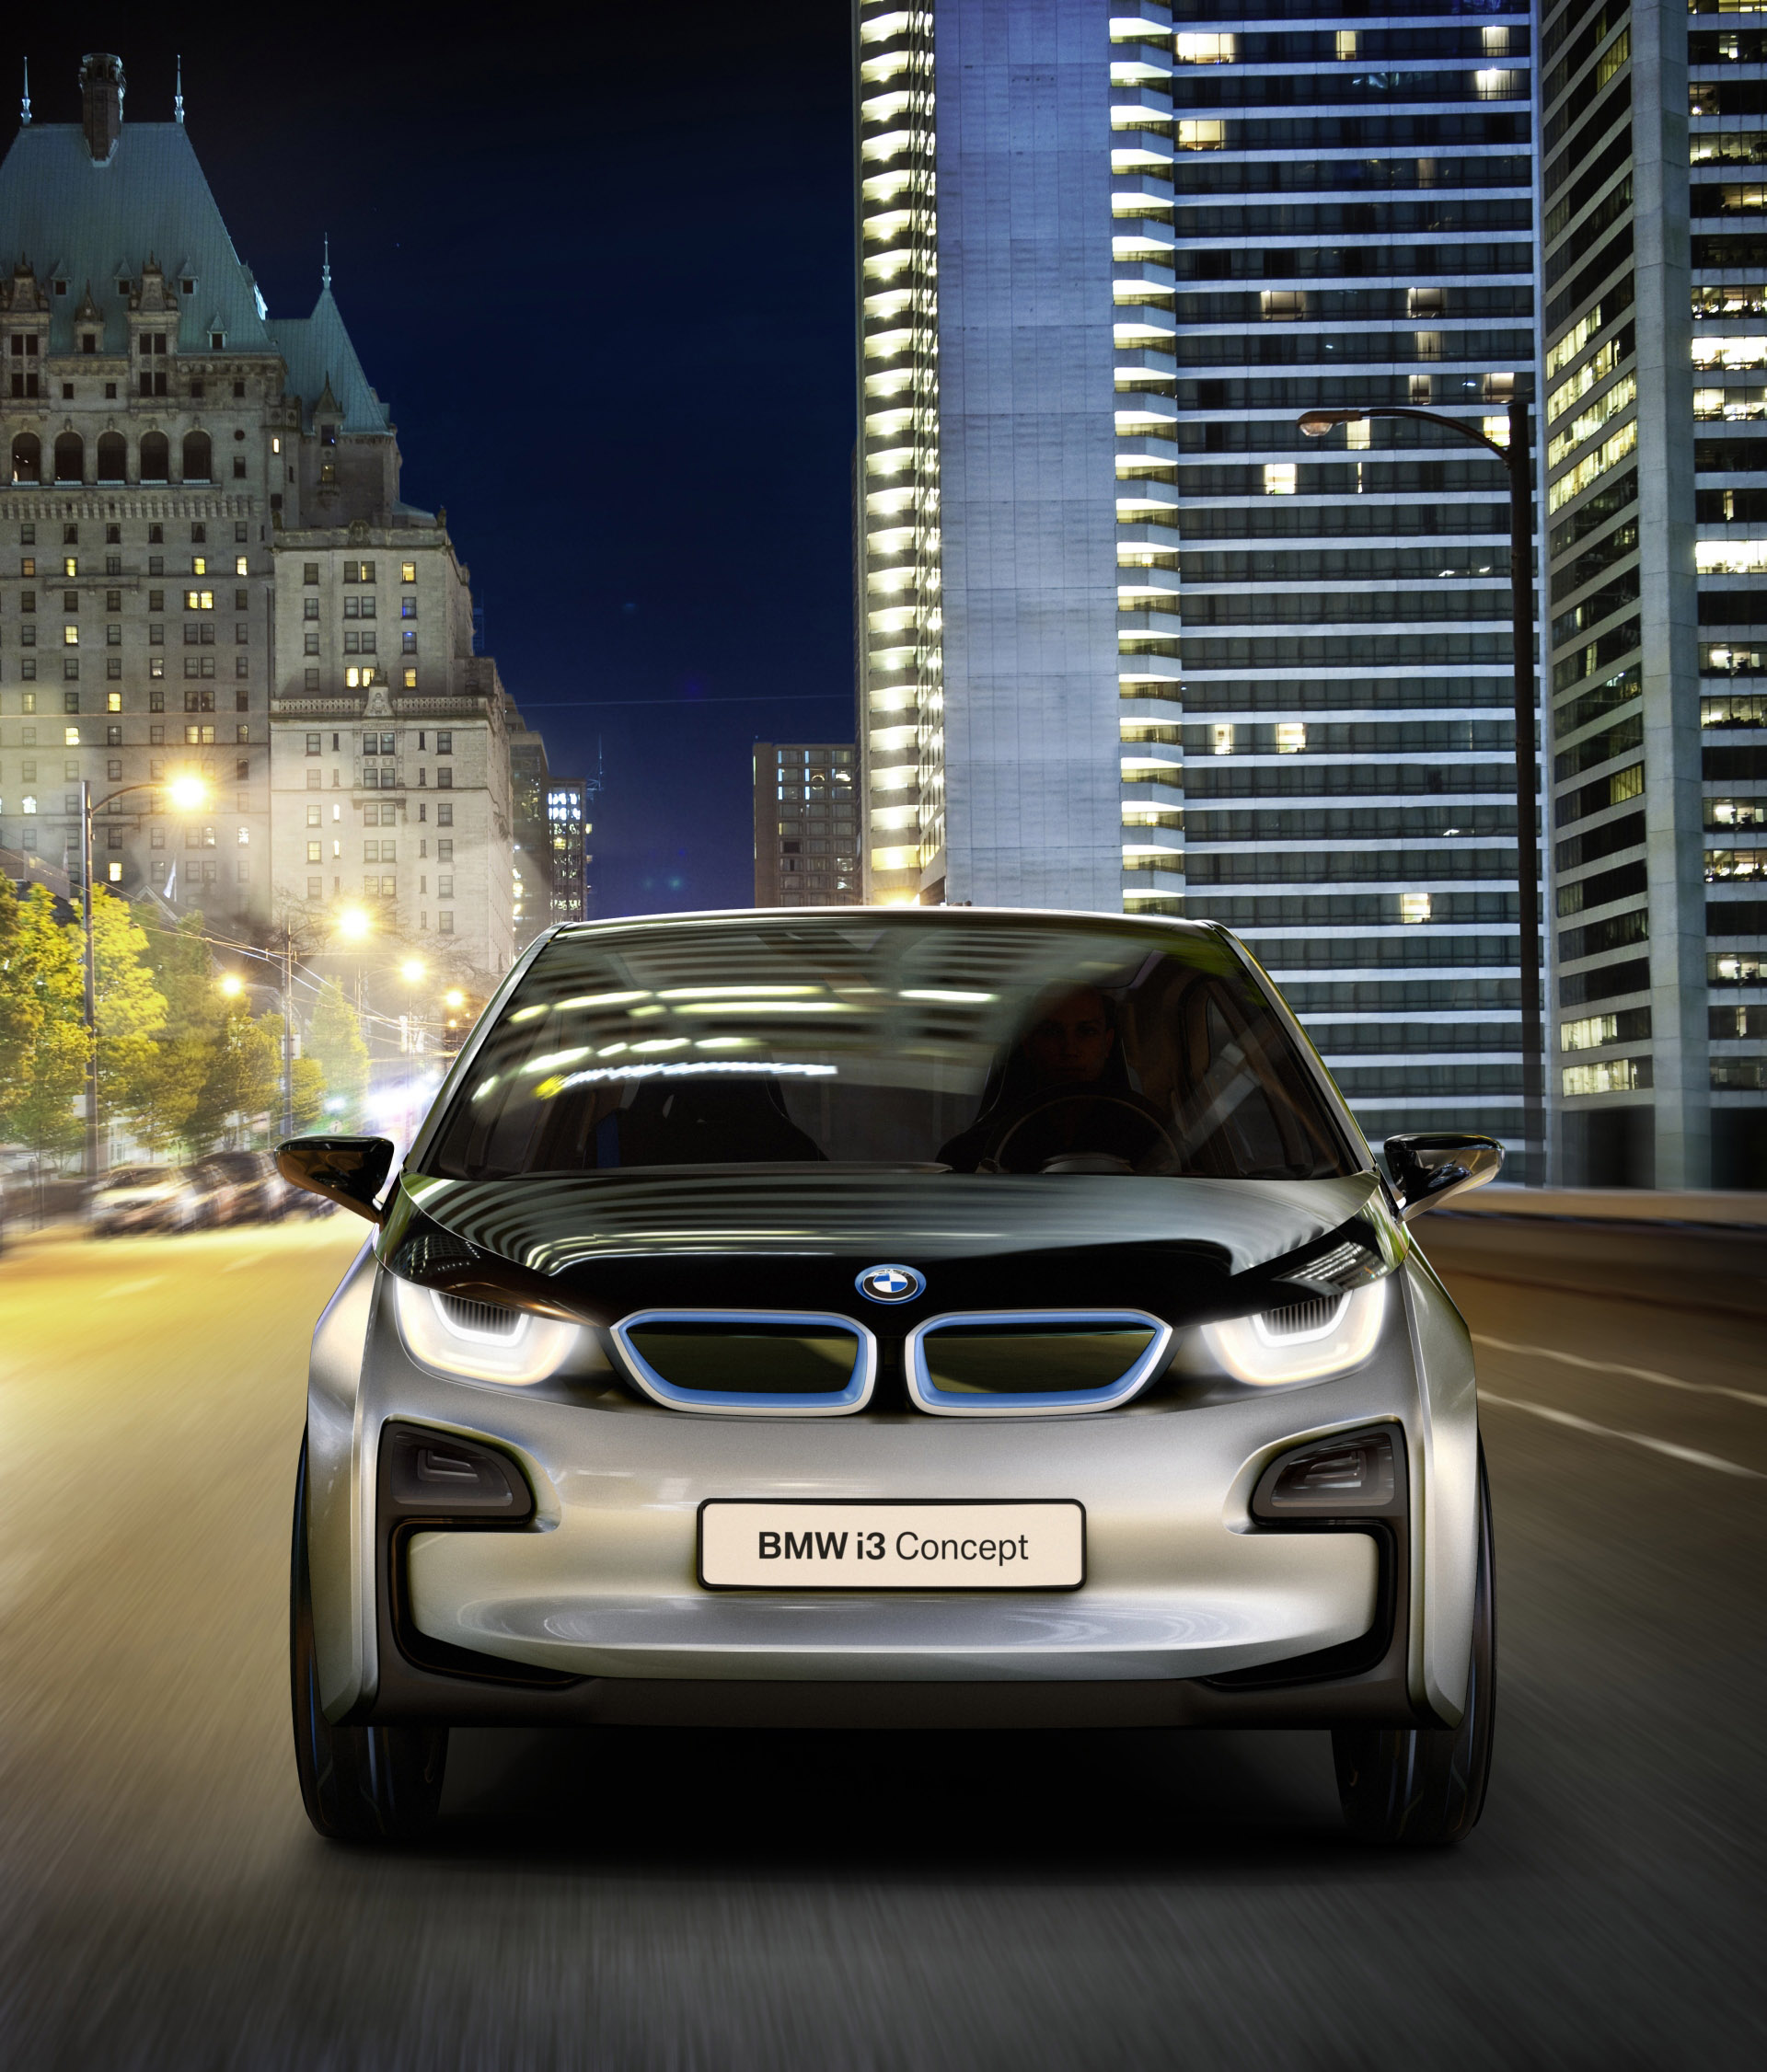 chevy cars electric car nissan bmw comparing leaf selling top price volt